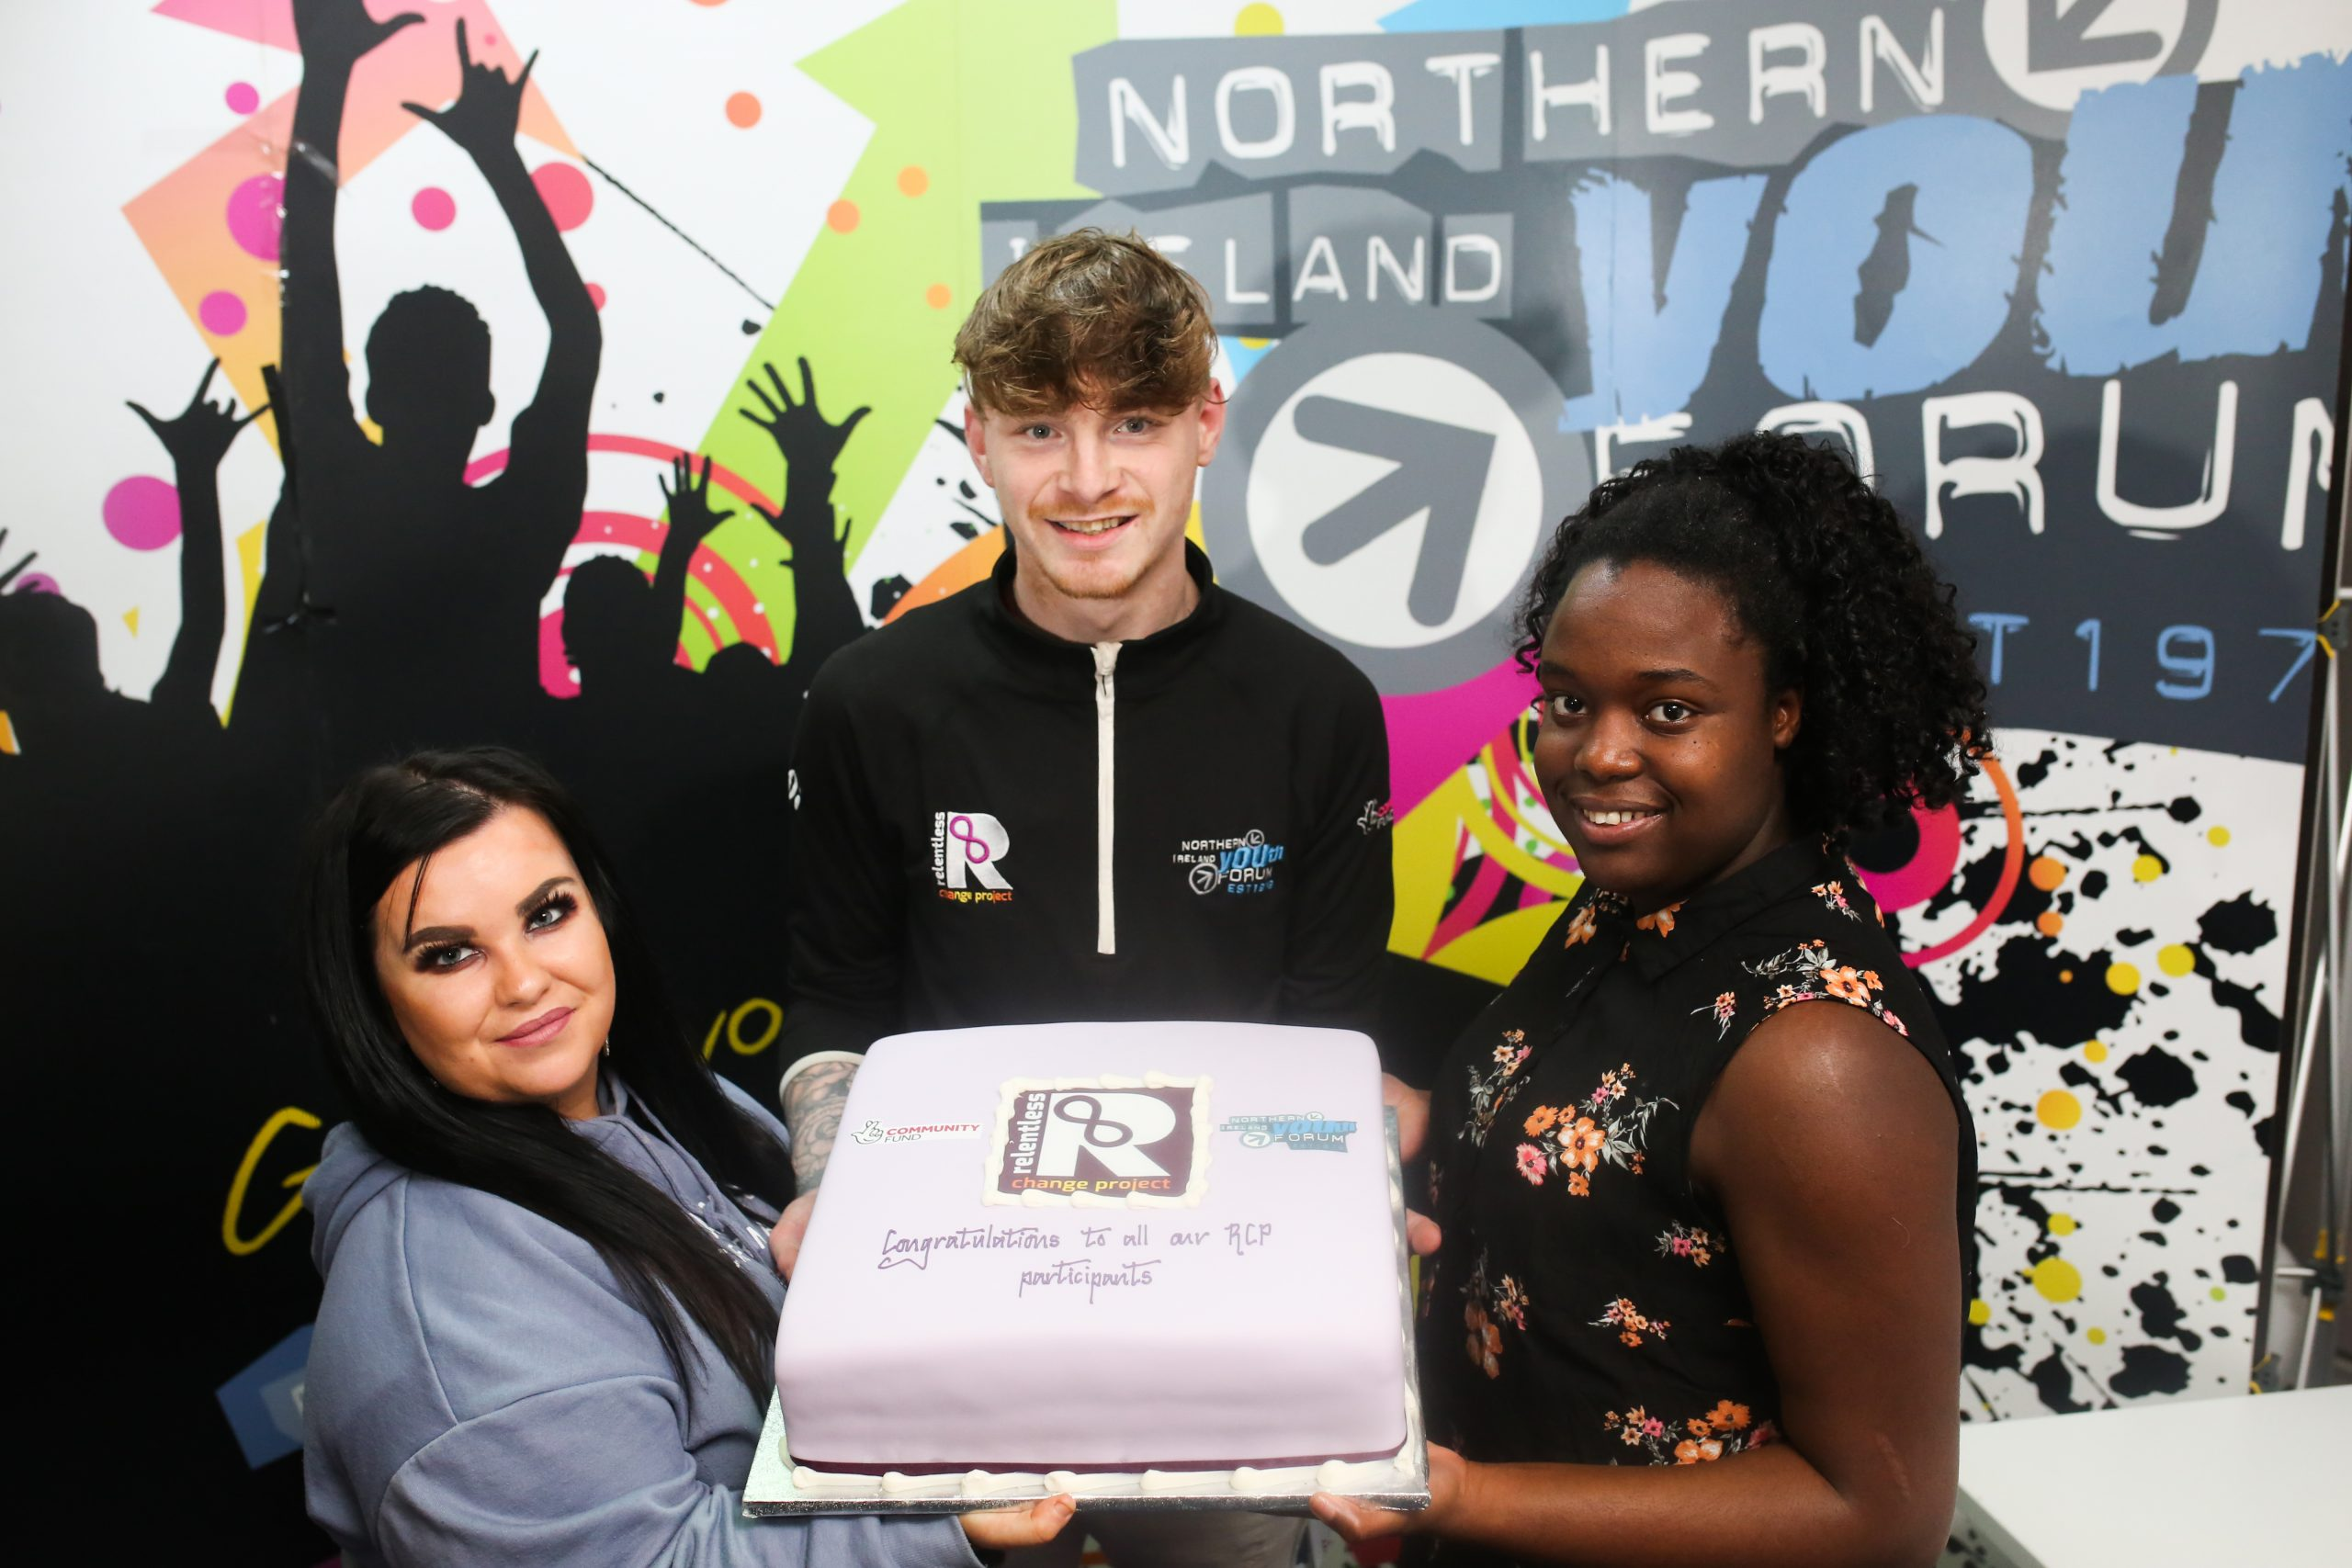 Young people affected by homelessness celebrate educational achievements